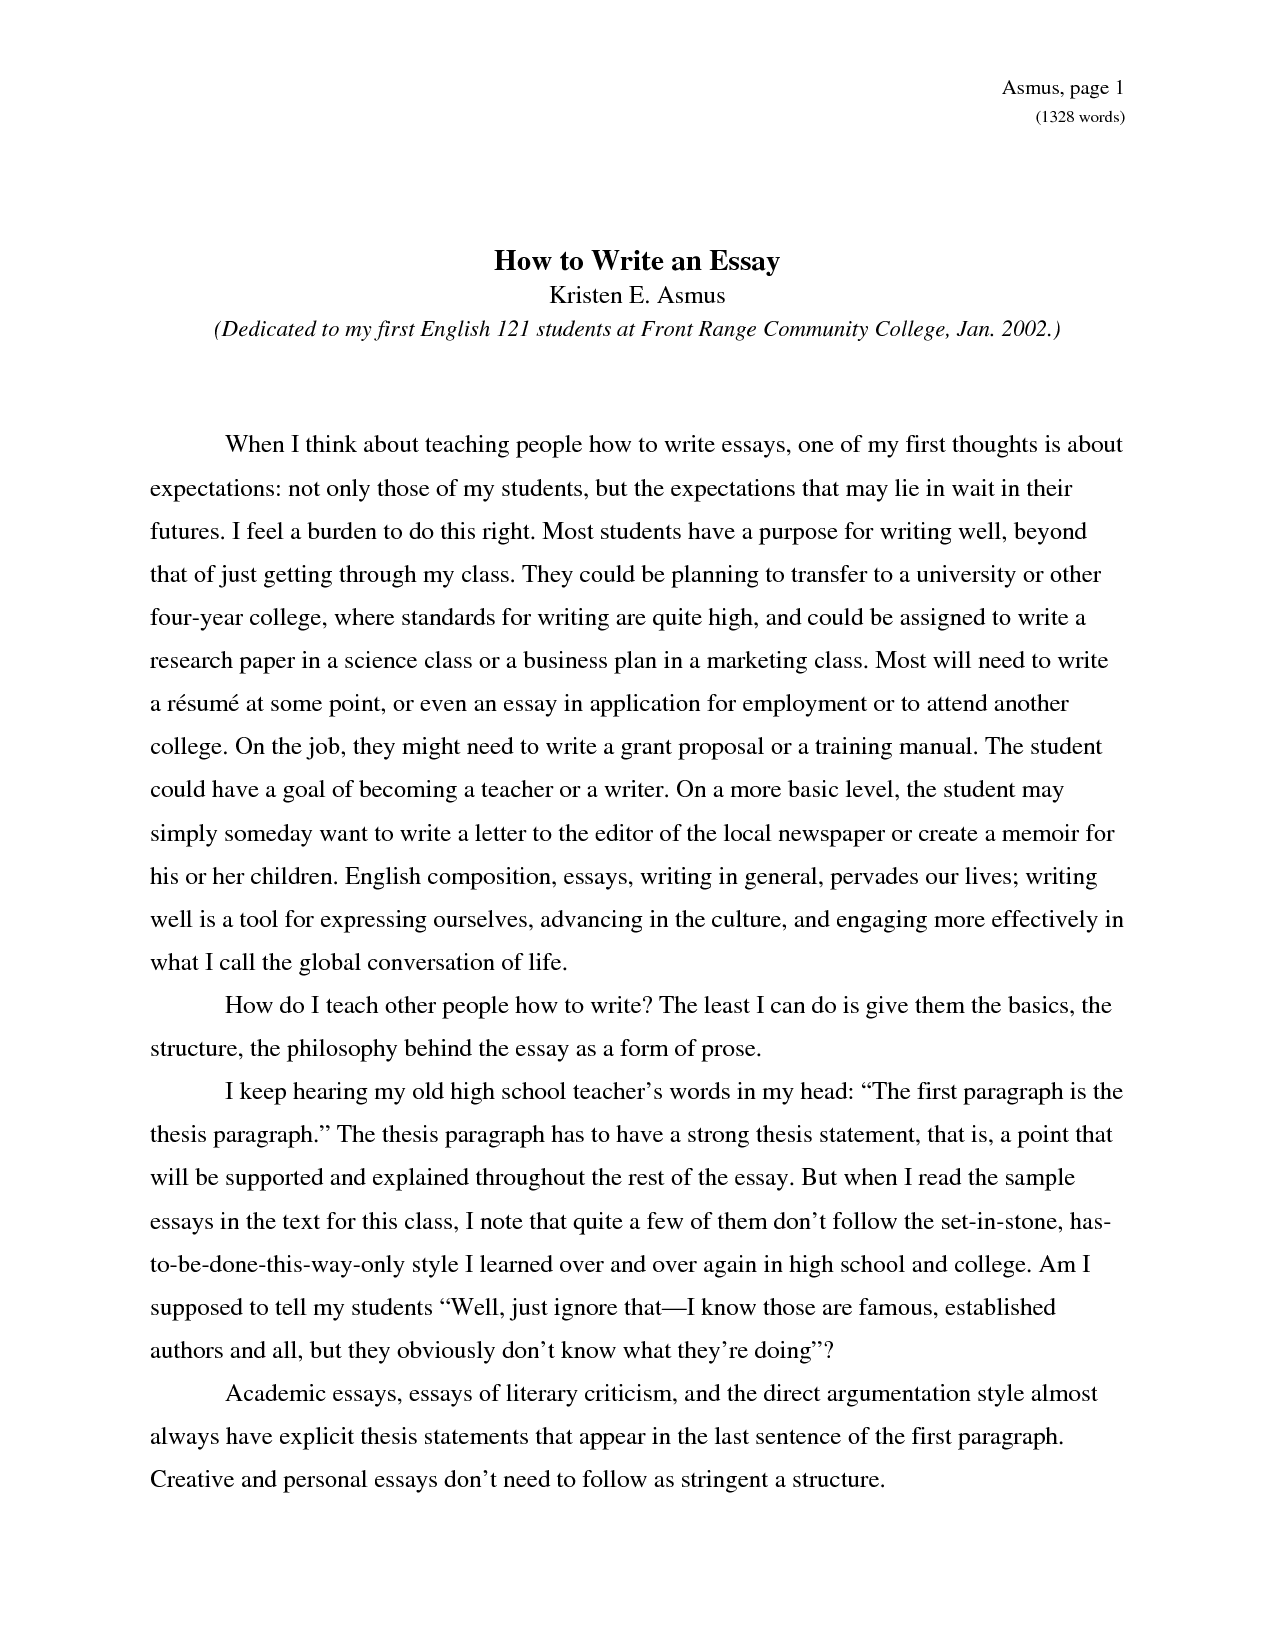 how to write a essay The 5 paragraph essay is considered to be the standard essay writing assignment it is used in most exams such as toefl, ielts, and the satsince most of these exams limit the student time-wise in the writing section, students are trained to memorize this format.